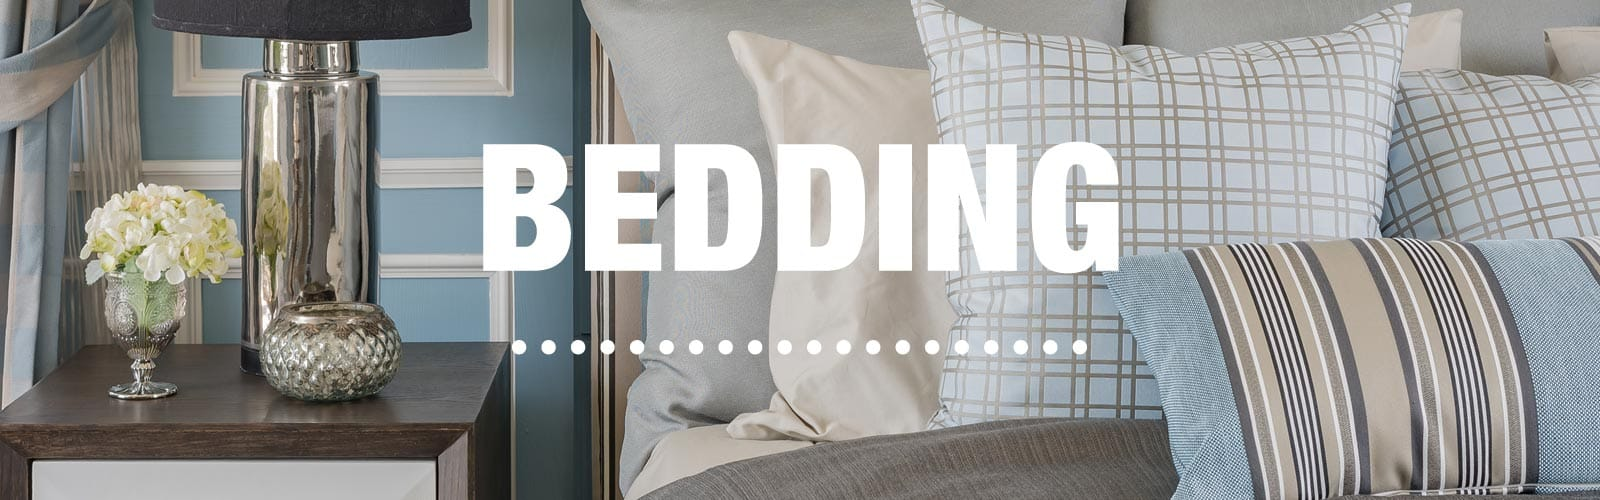 Bedding Guide